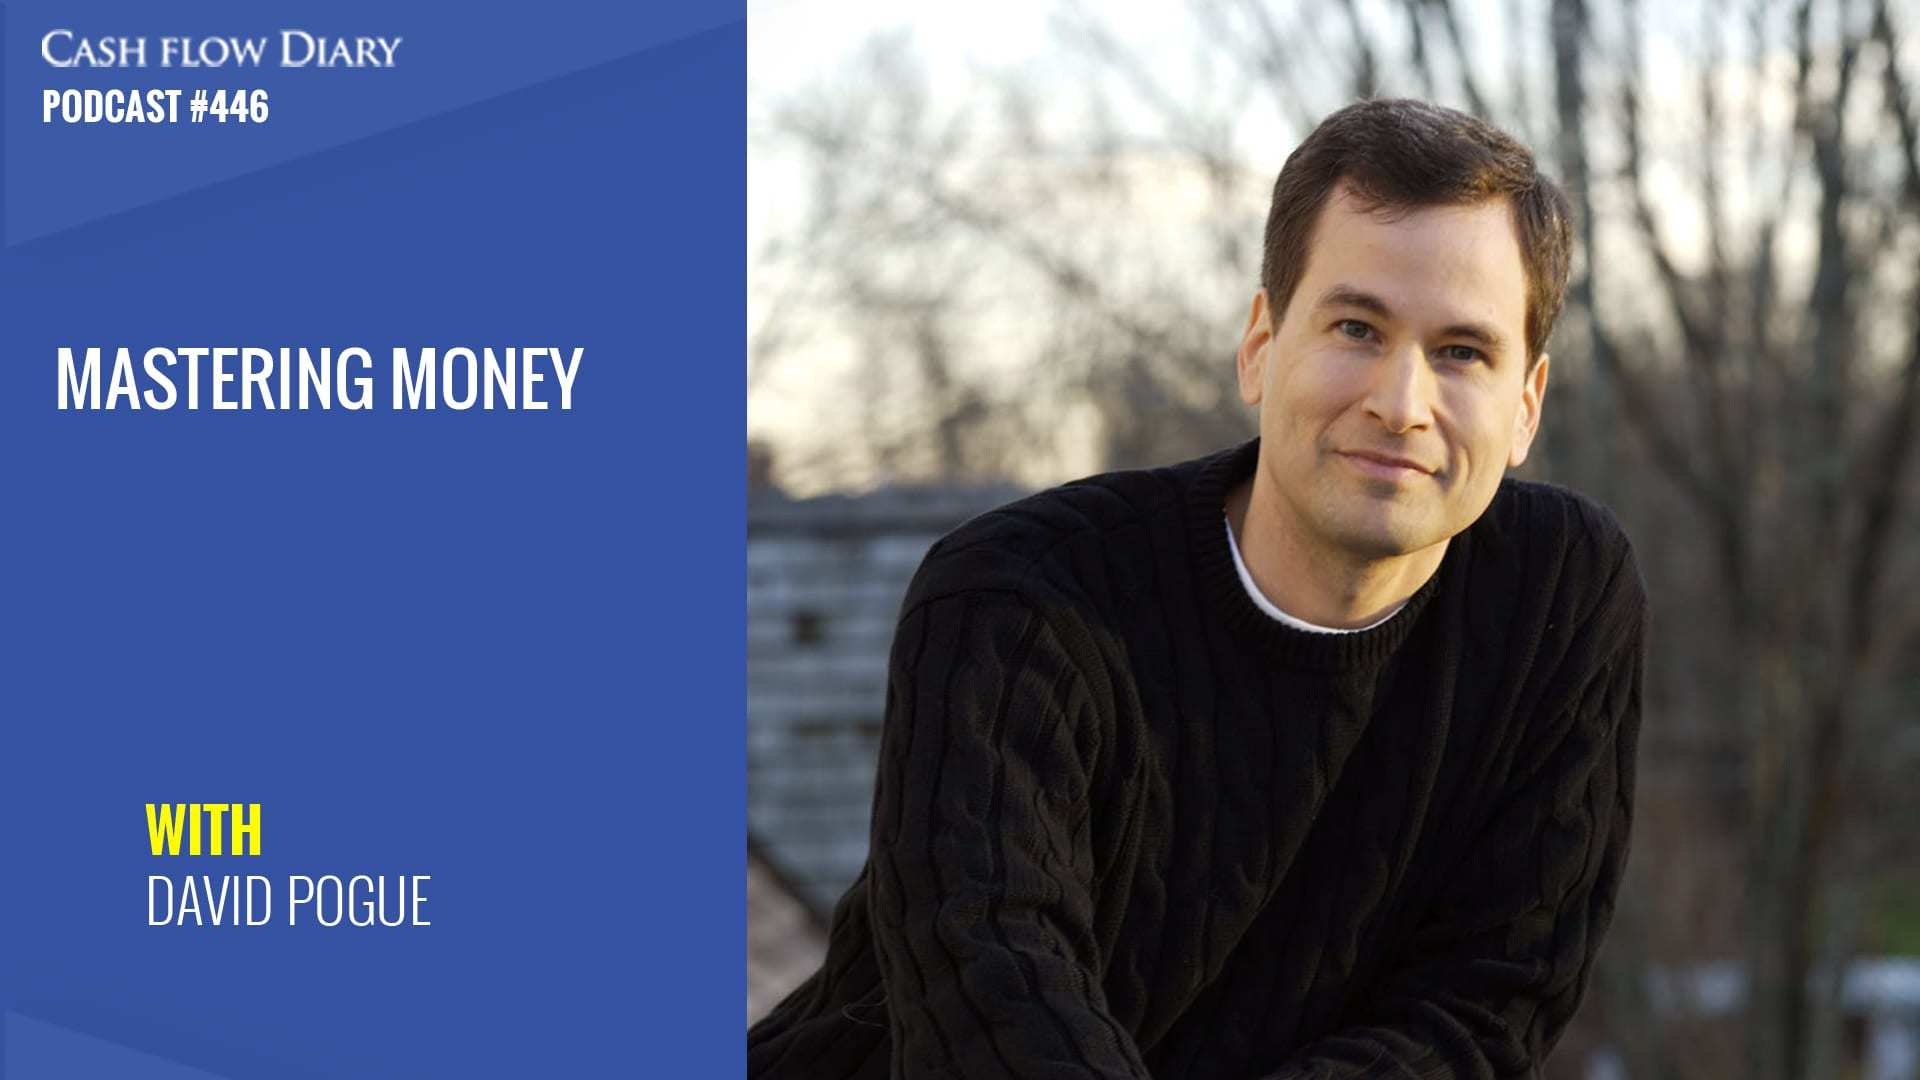 Mastering Money with David Pogue